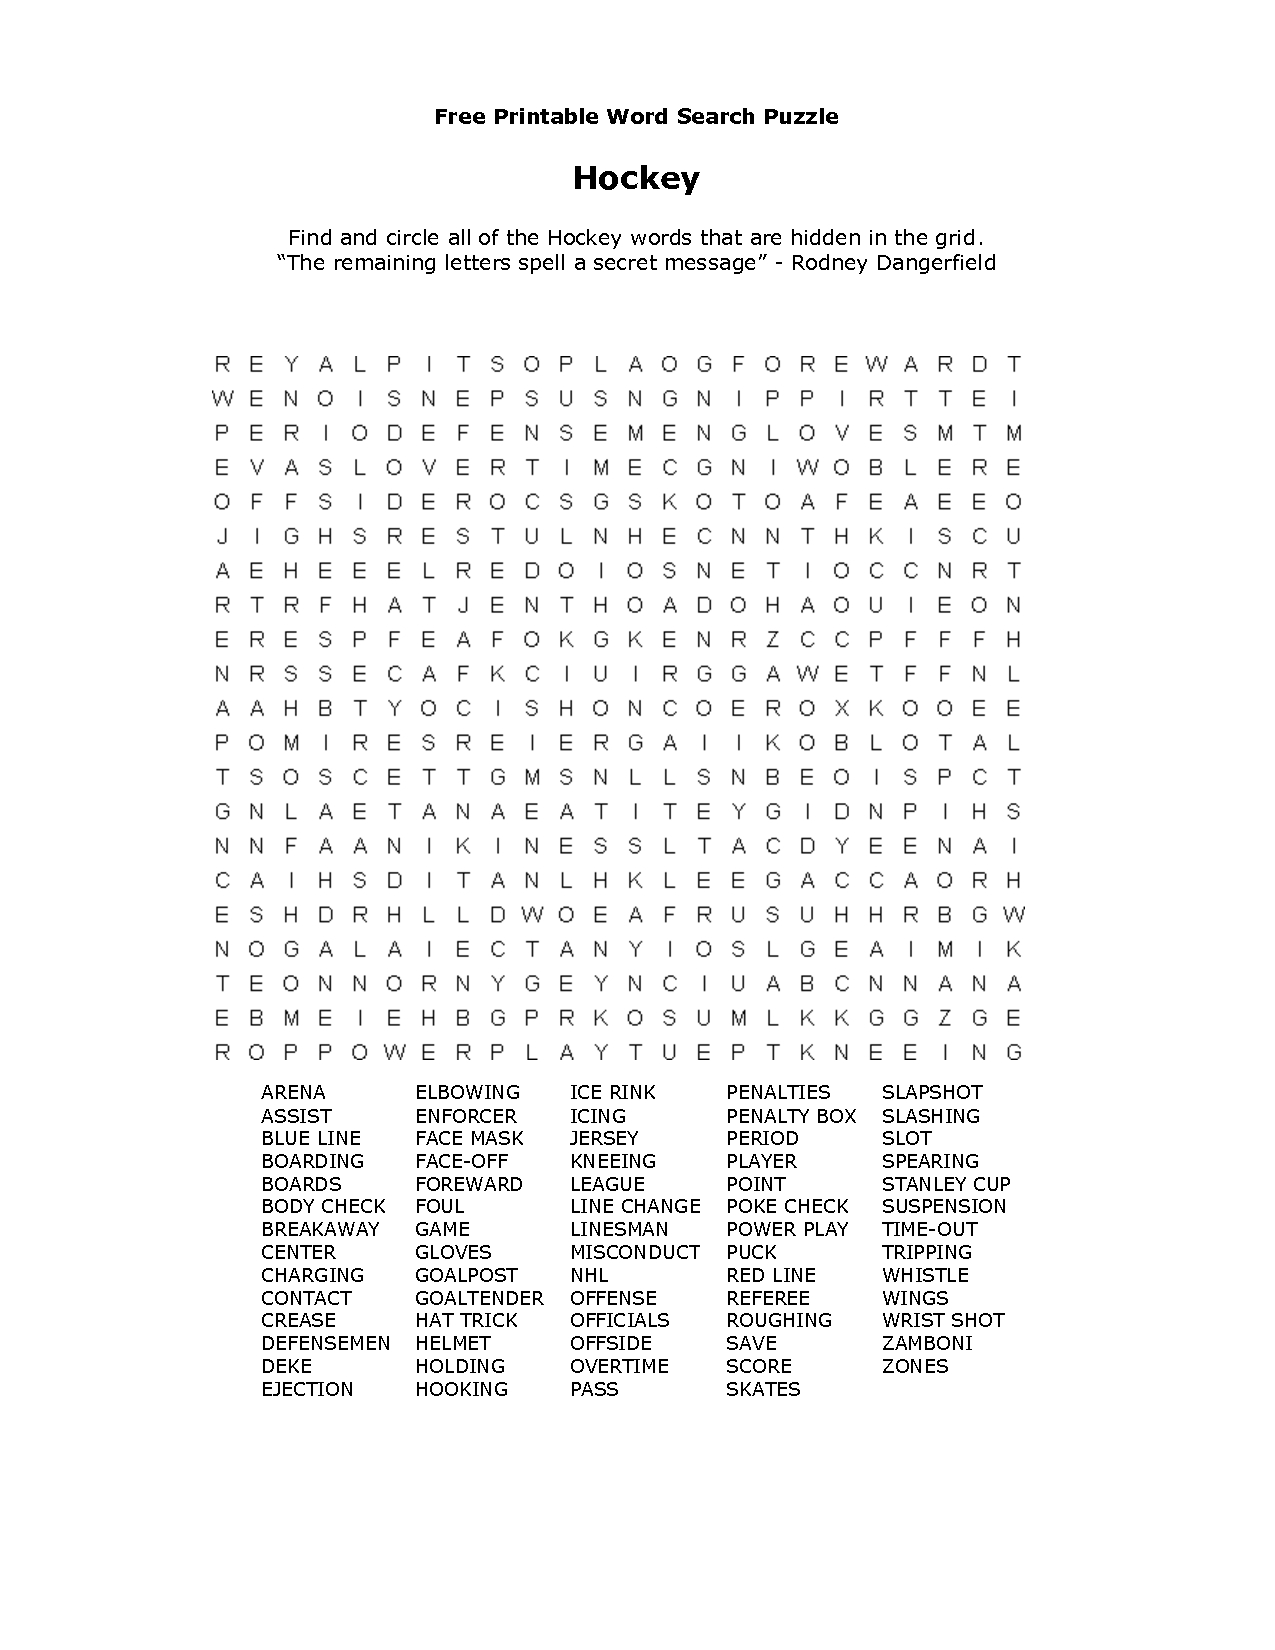 Free Printable Word Searches | طلال | Free Printable Word Searches - Free Printable Word Finds